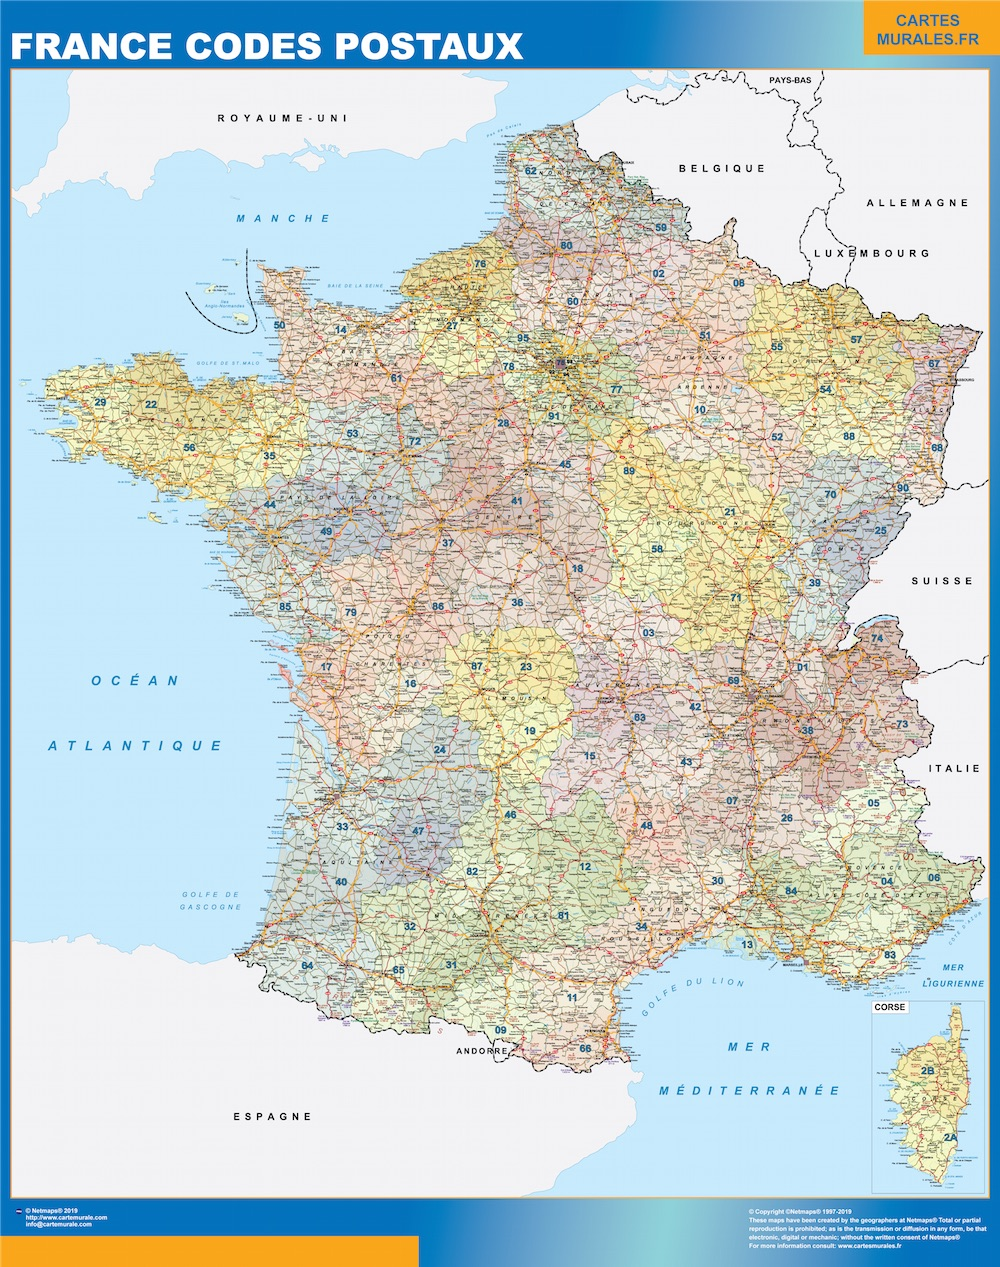 Carte France codes postaux